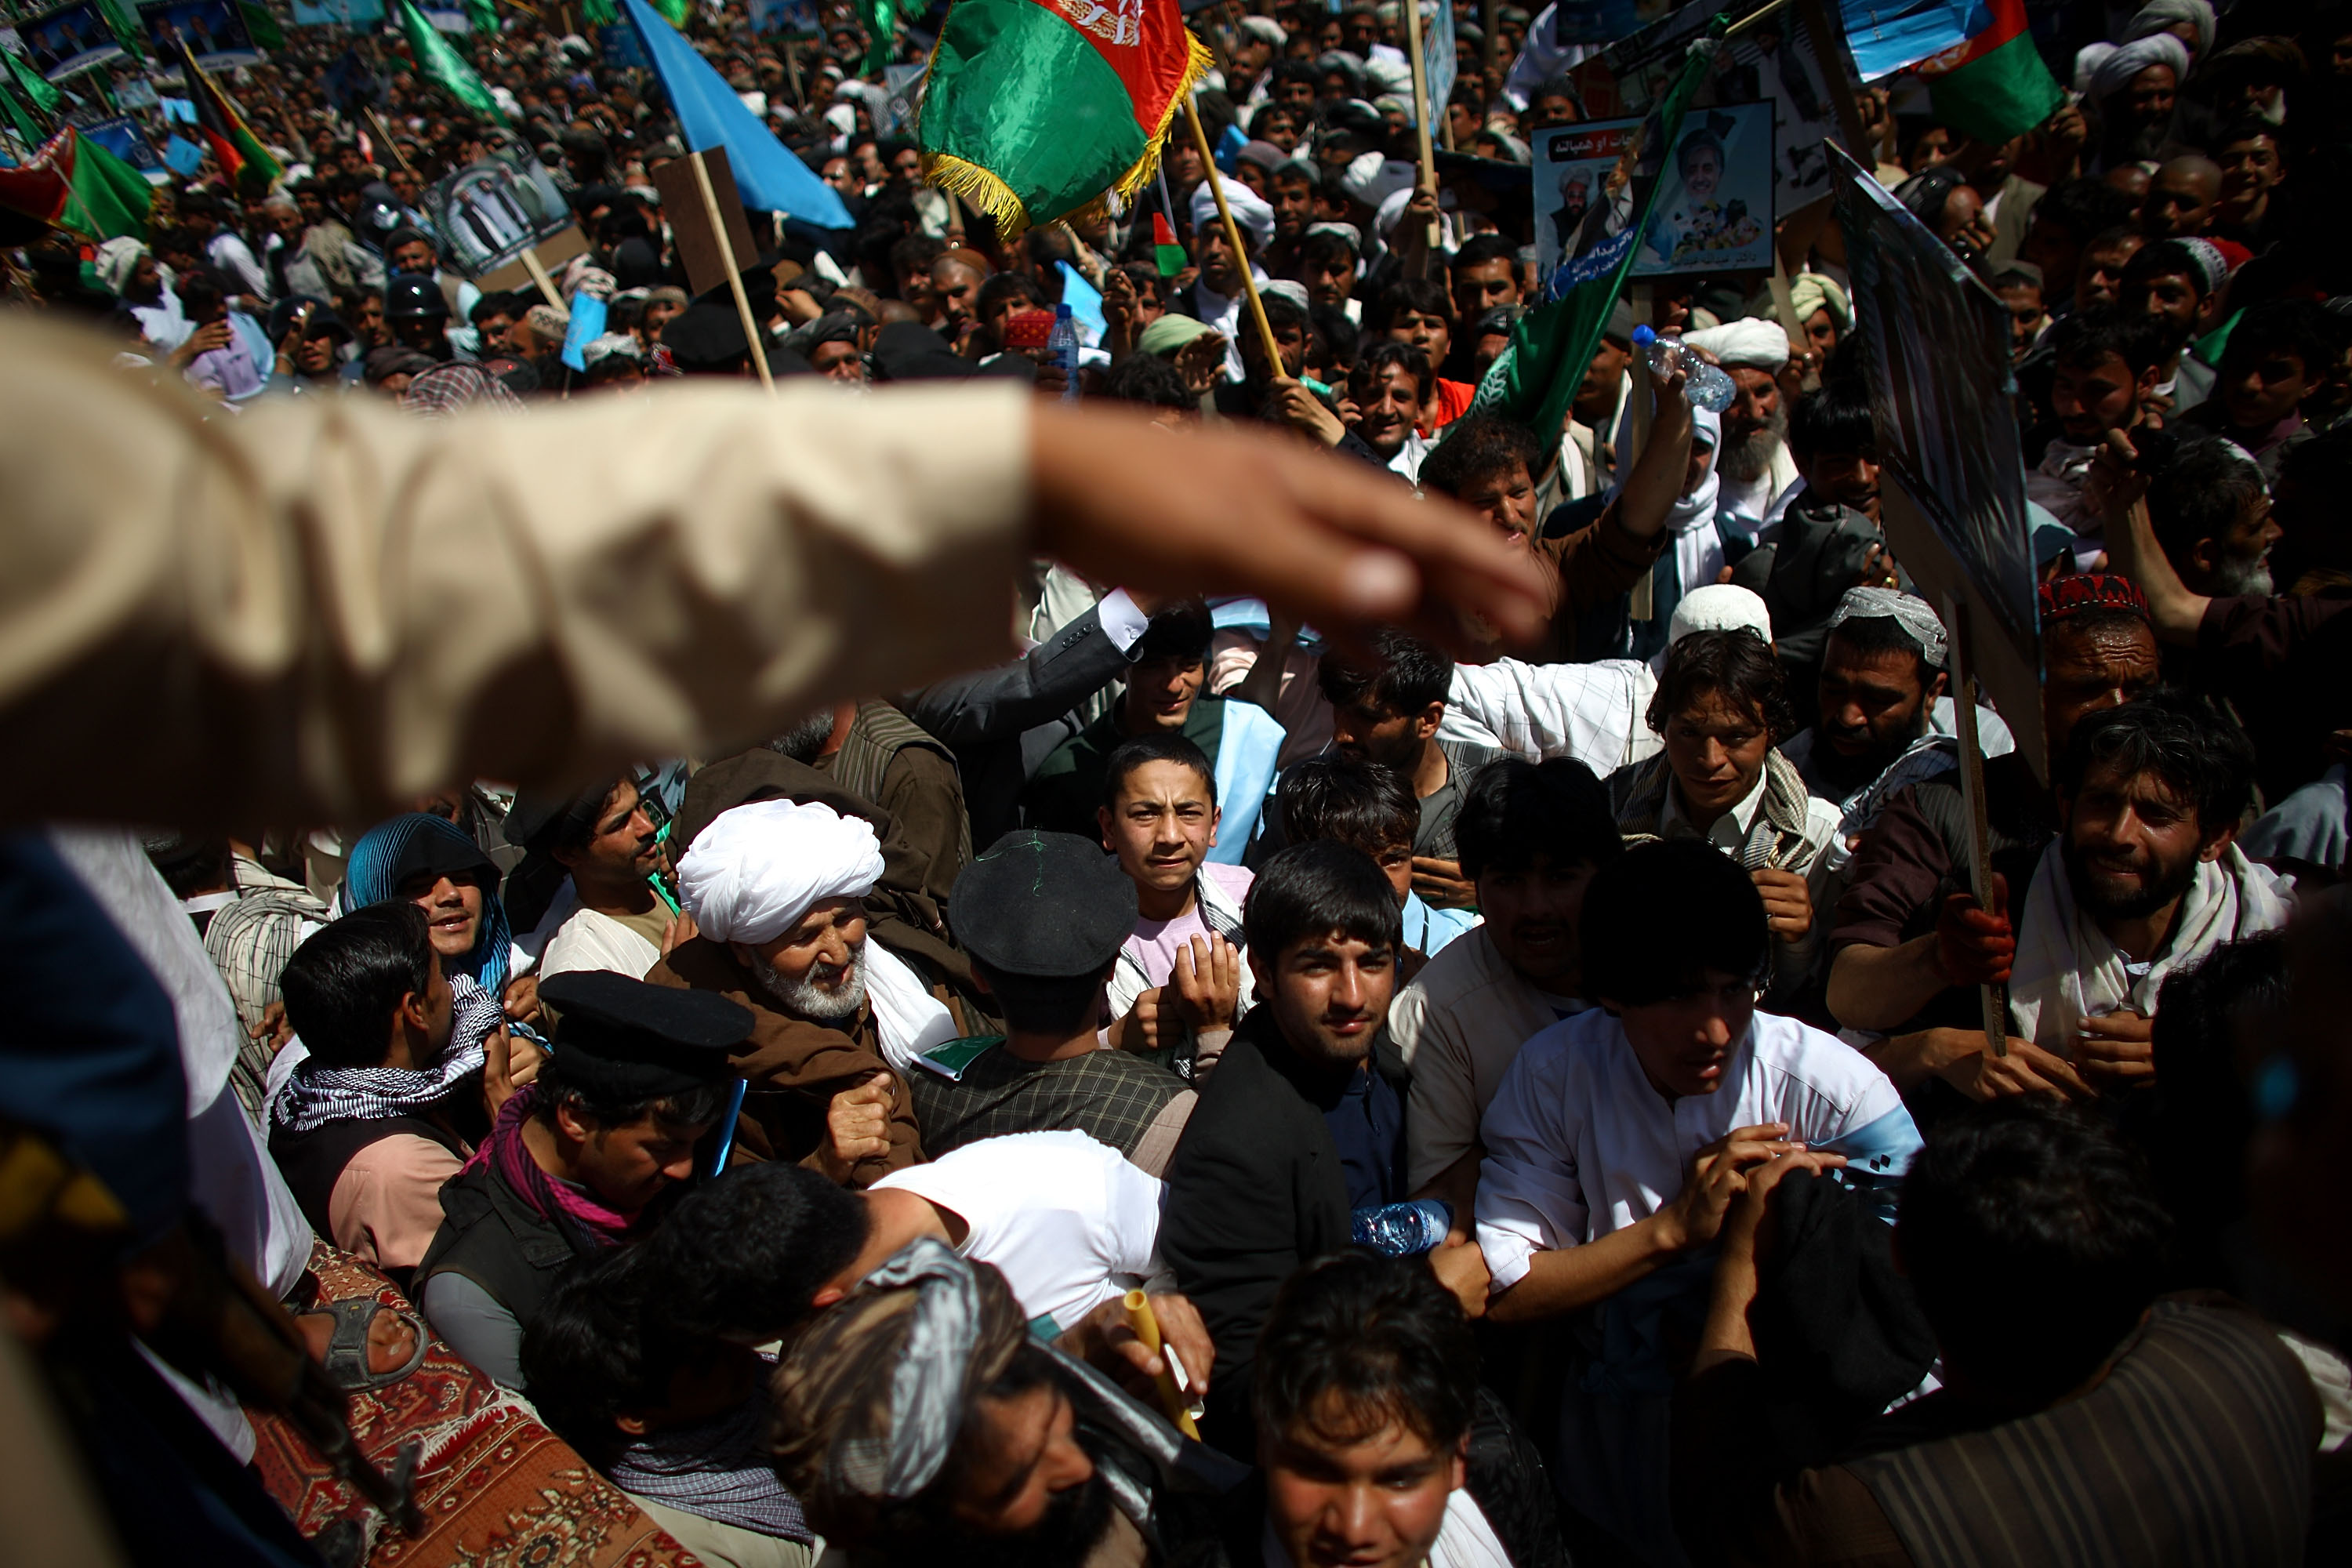 Crowds surge toward the stage during a speech by Abdullah at a stadium in Kandahar as part of a campaign stop.